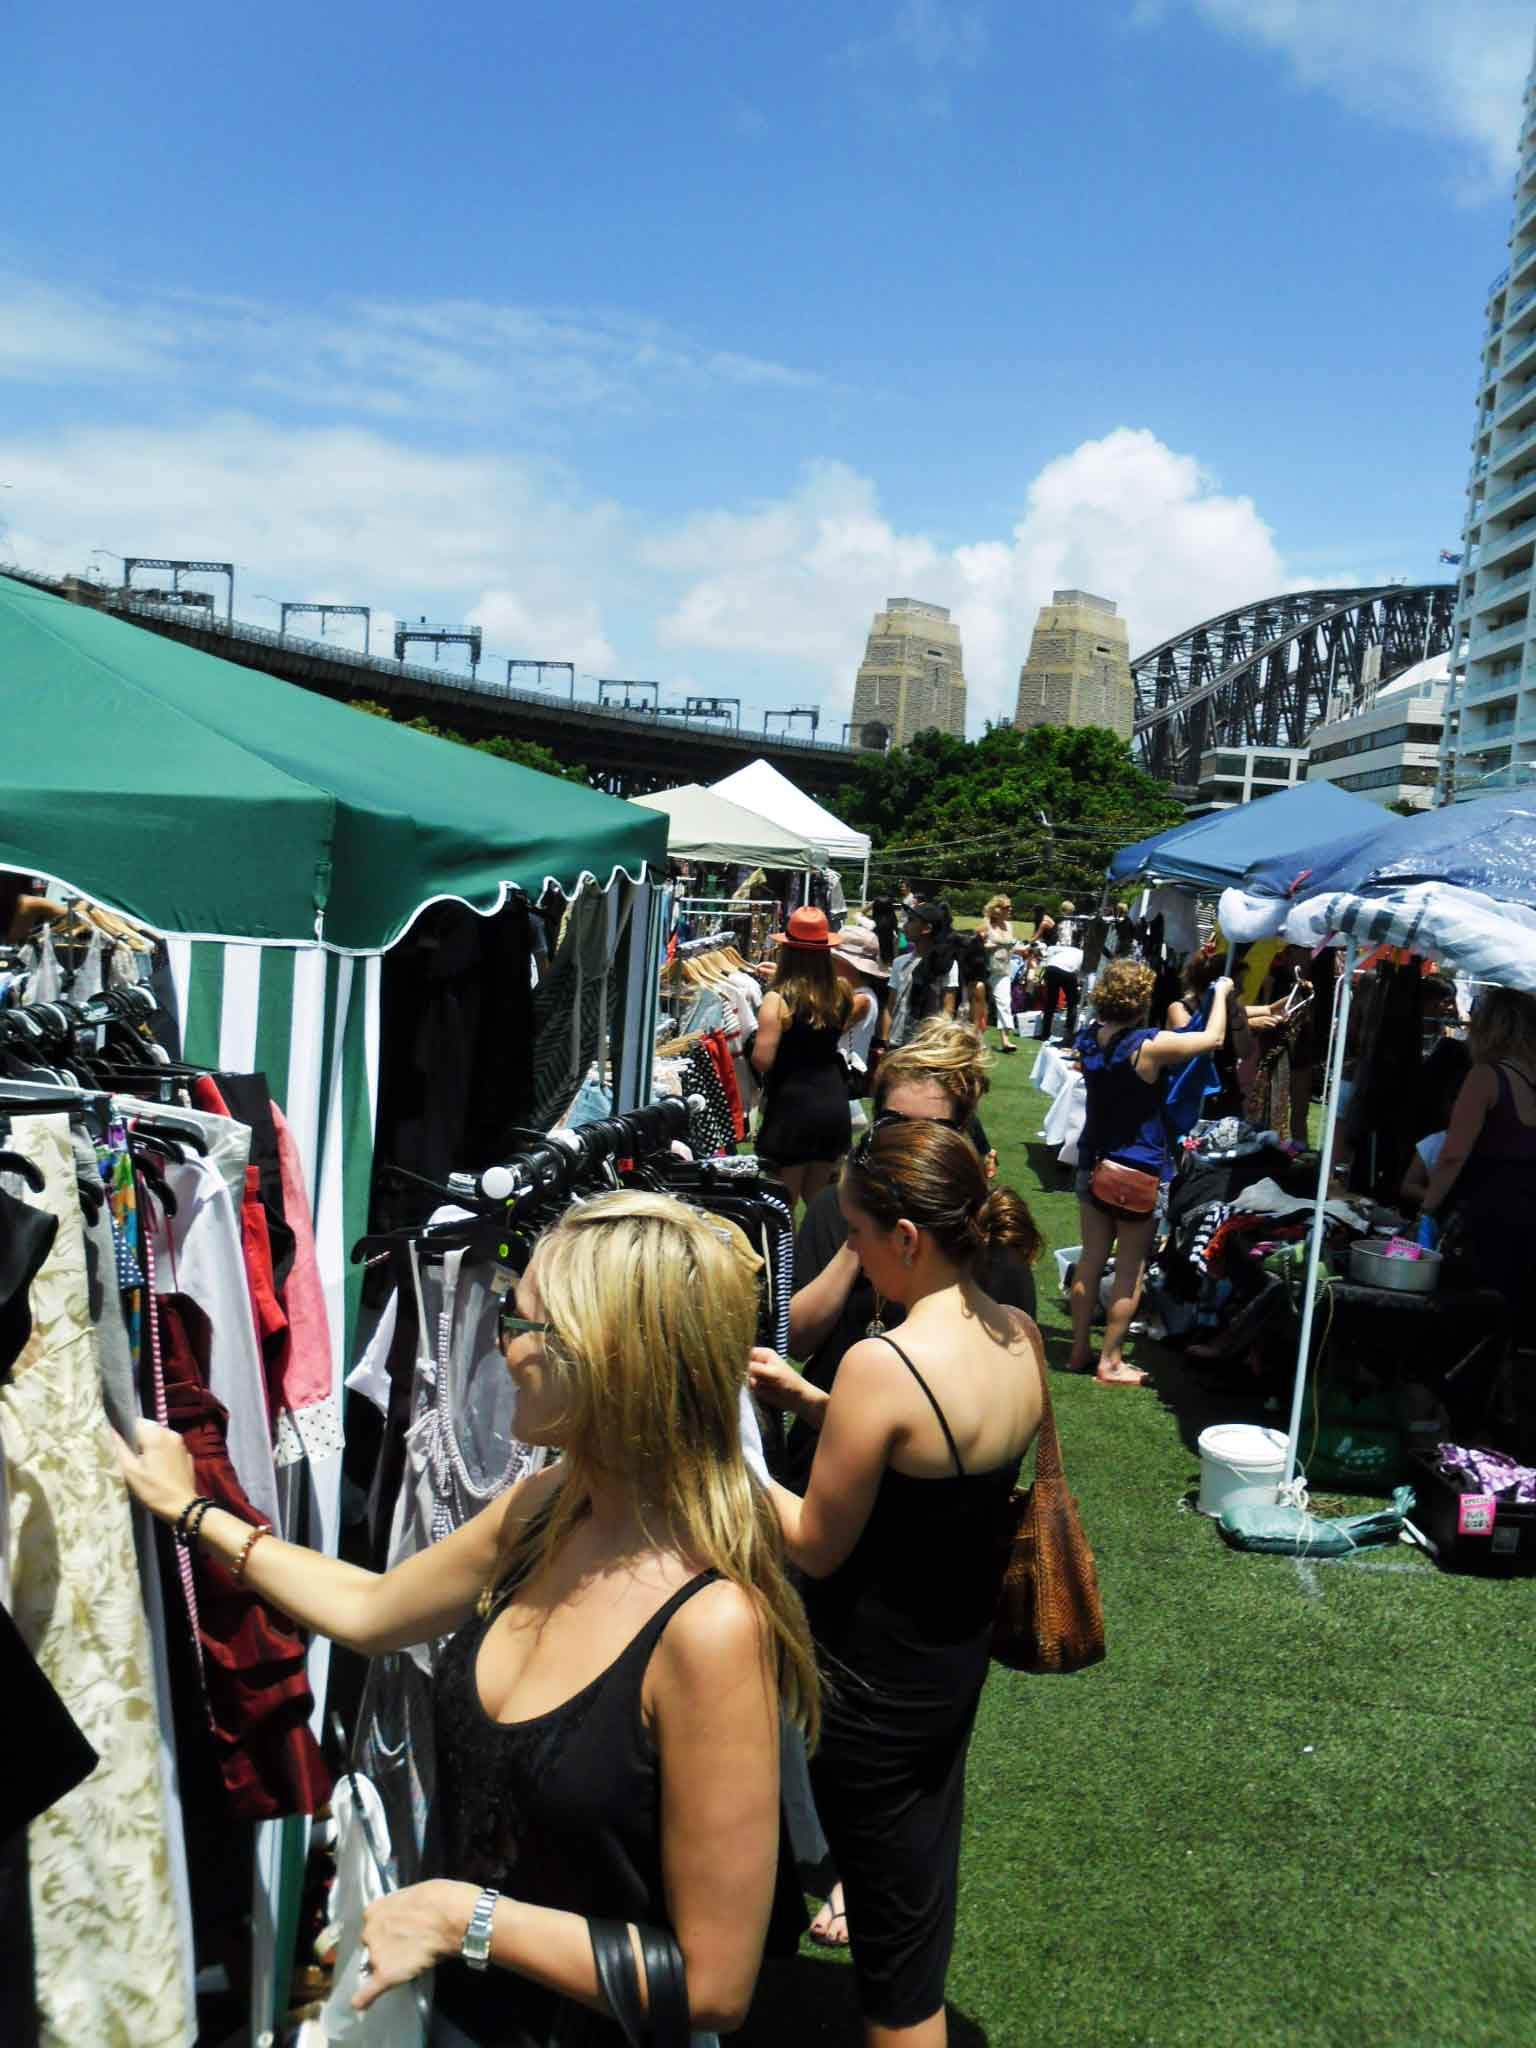 kirribilli sydney markets guide - photo#27